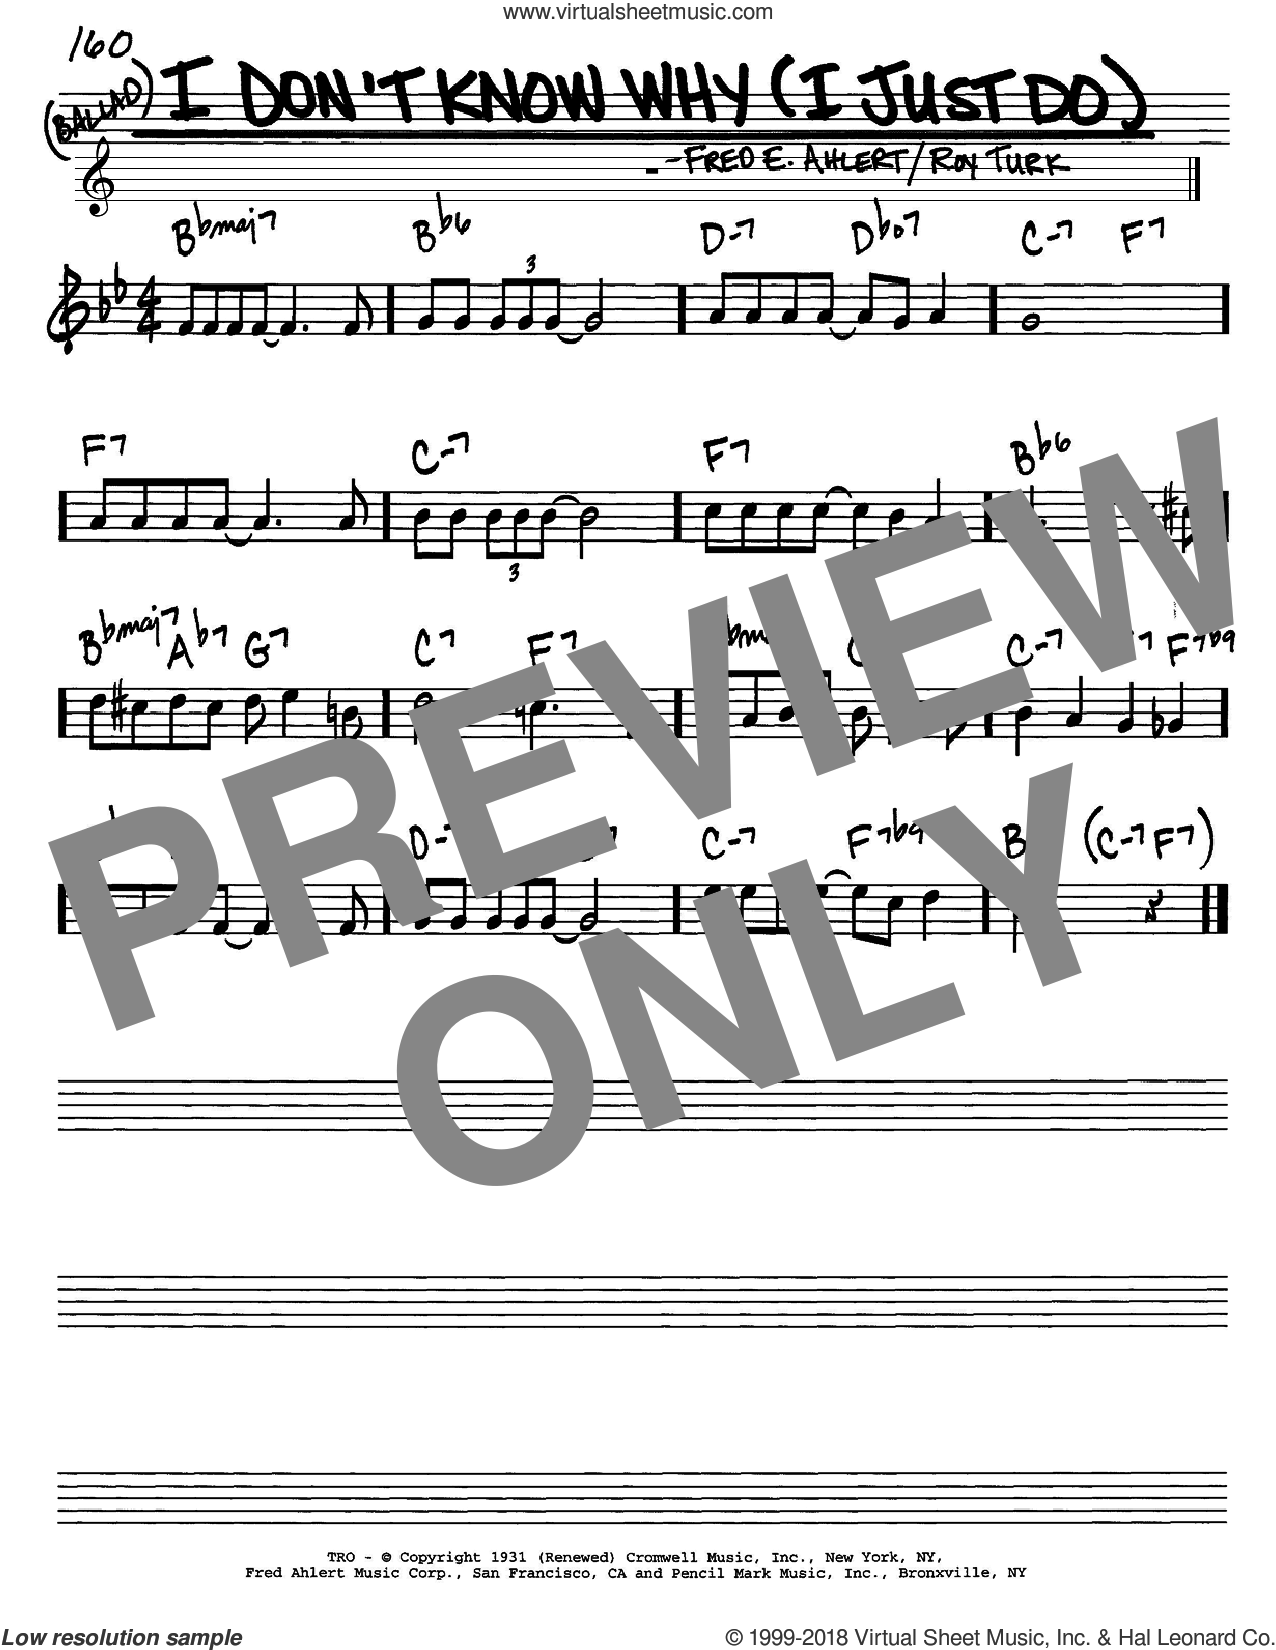 I Don't Know Why (I Just Do) sheet music for voice and other instruments (C) by Roy Turk, Dean Martin, Frank Sinatra, Nat King Cole and Fred Ahlert